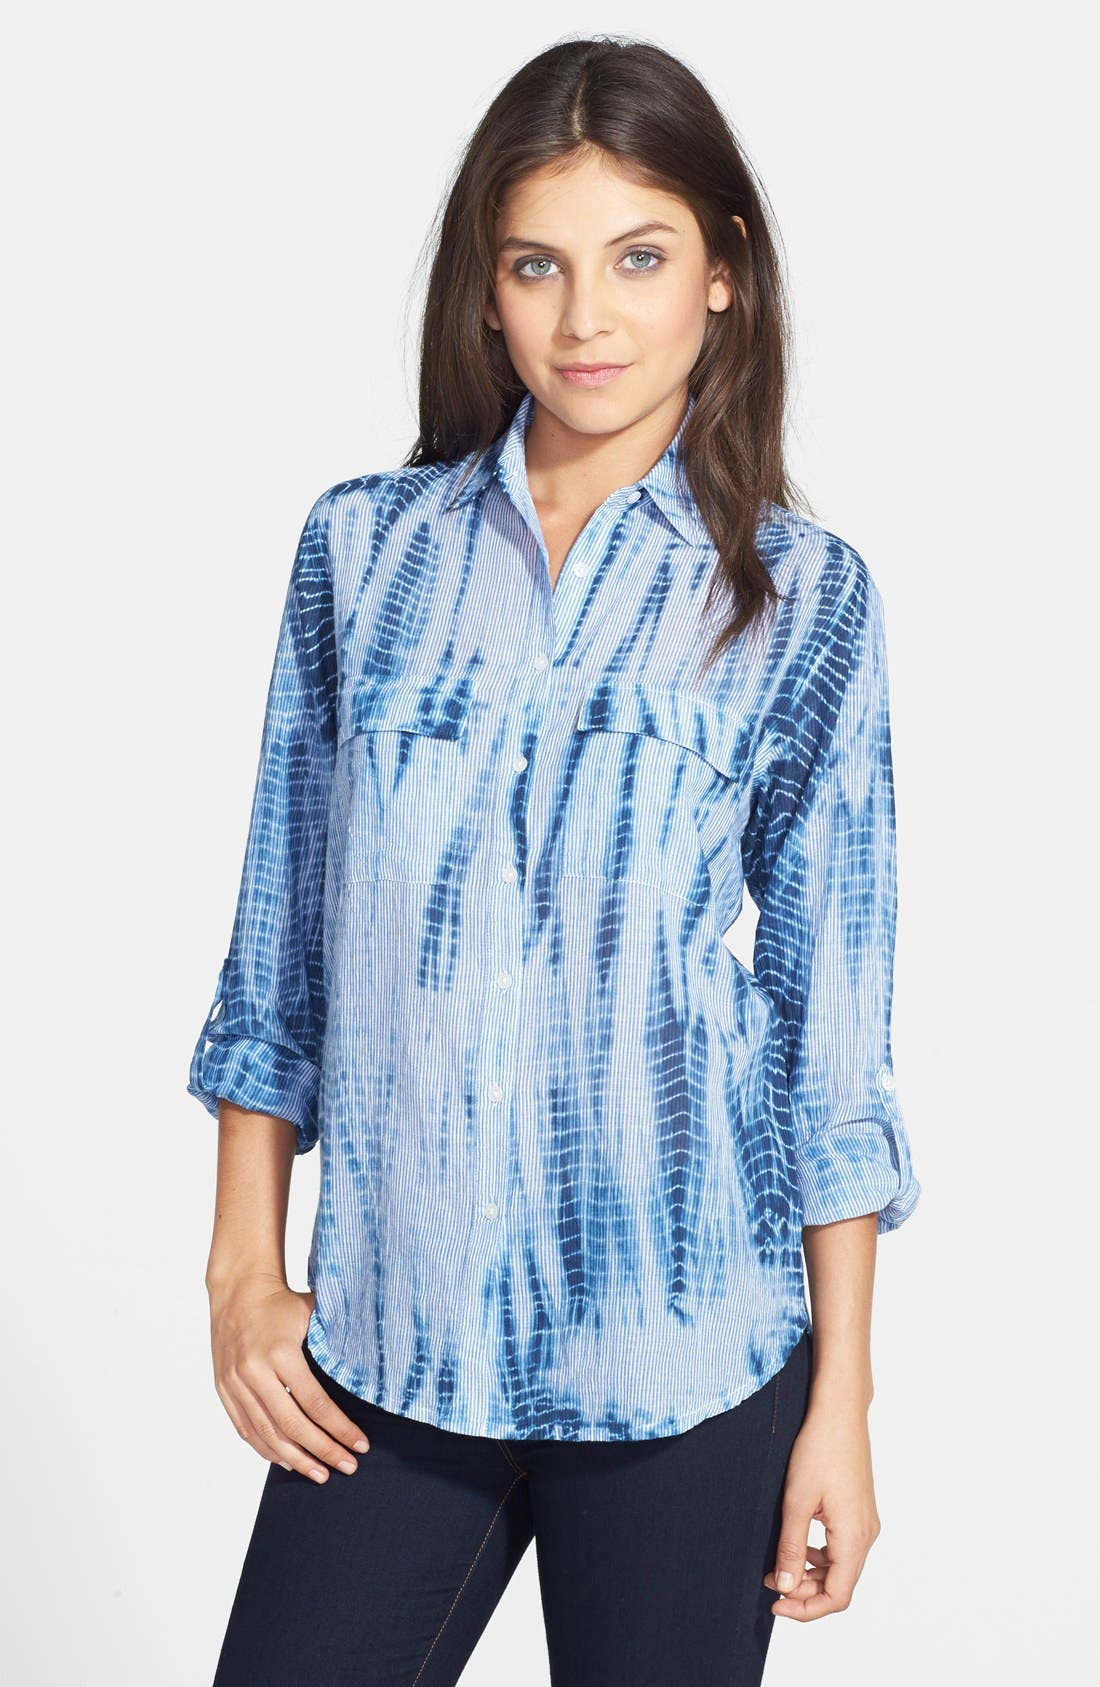 Main Image - Chaus Tie Dye Print Roll Sleeve Cotton Shirt